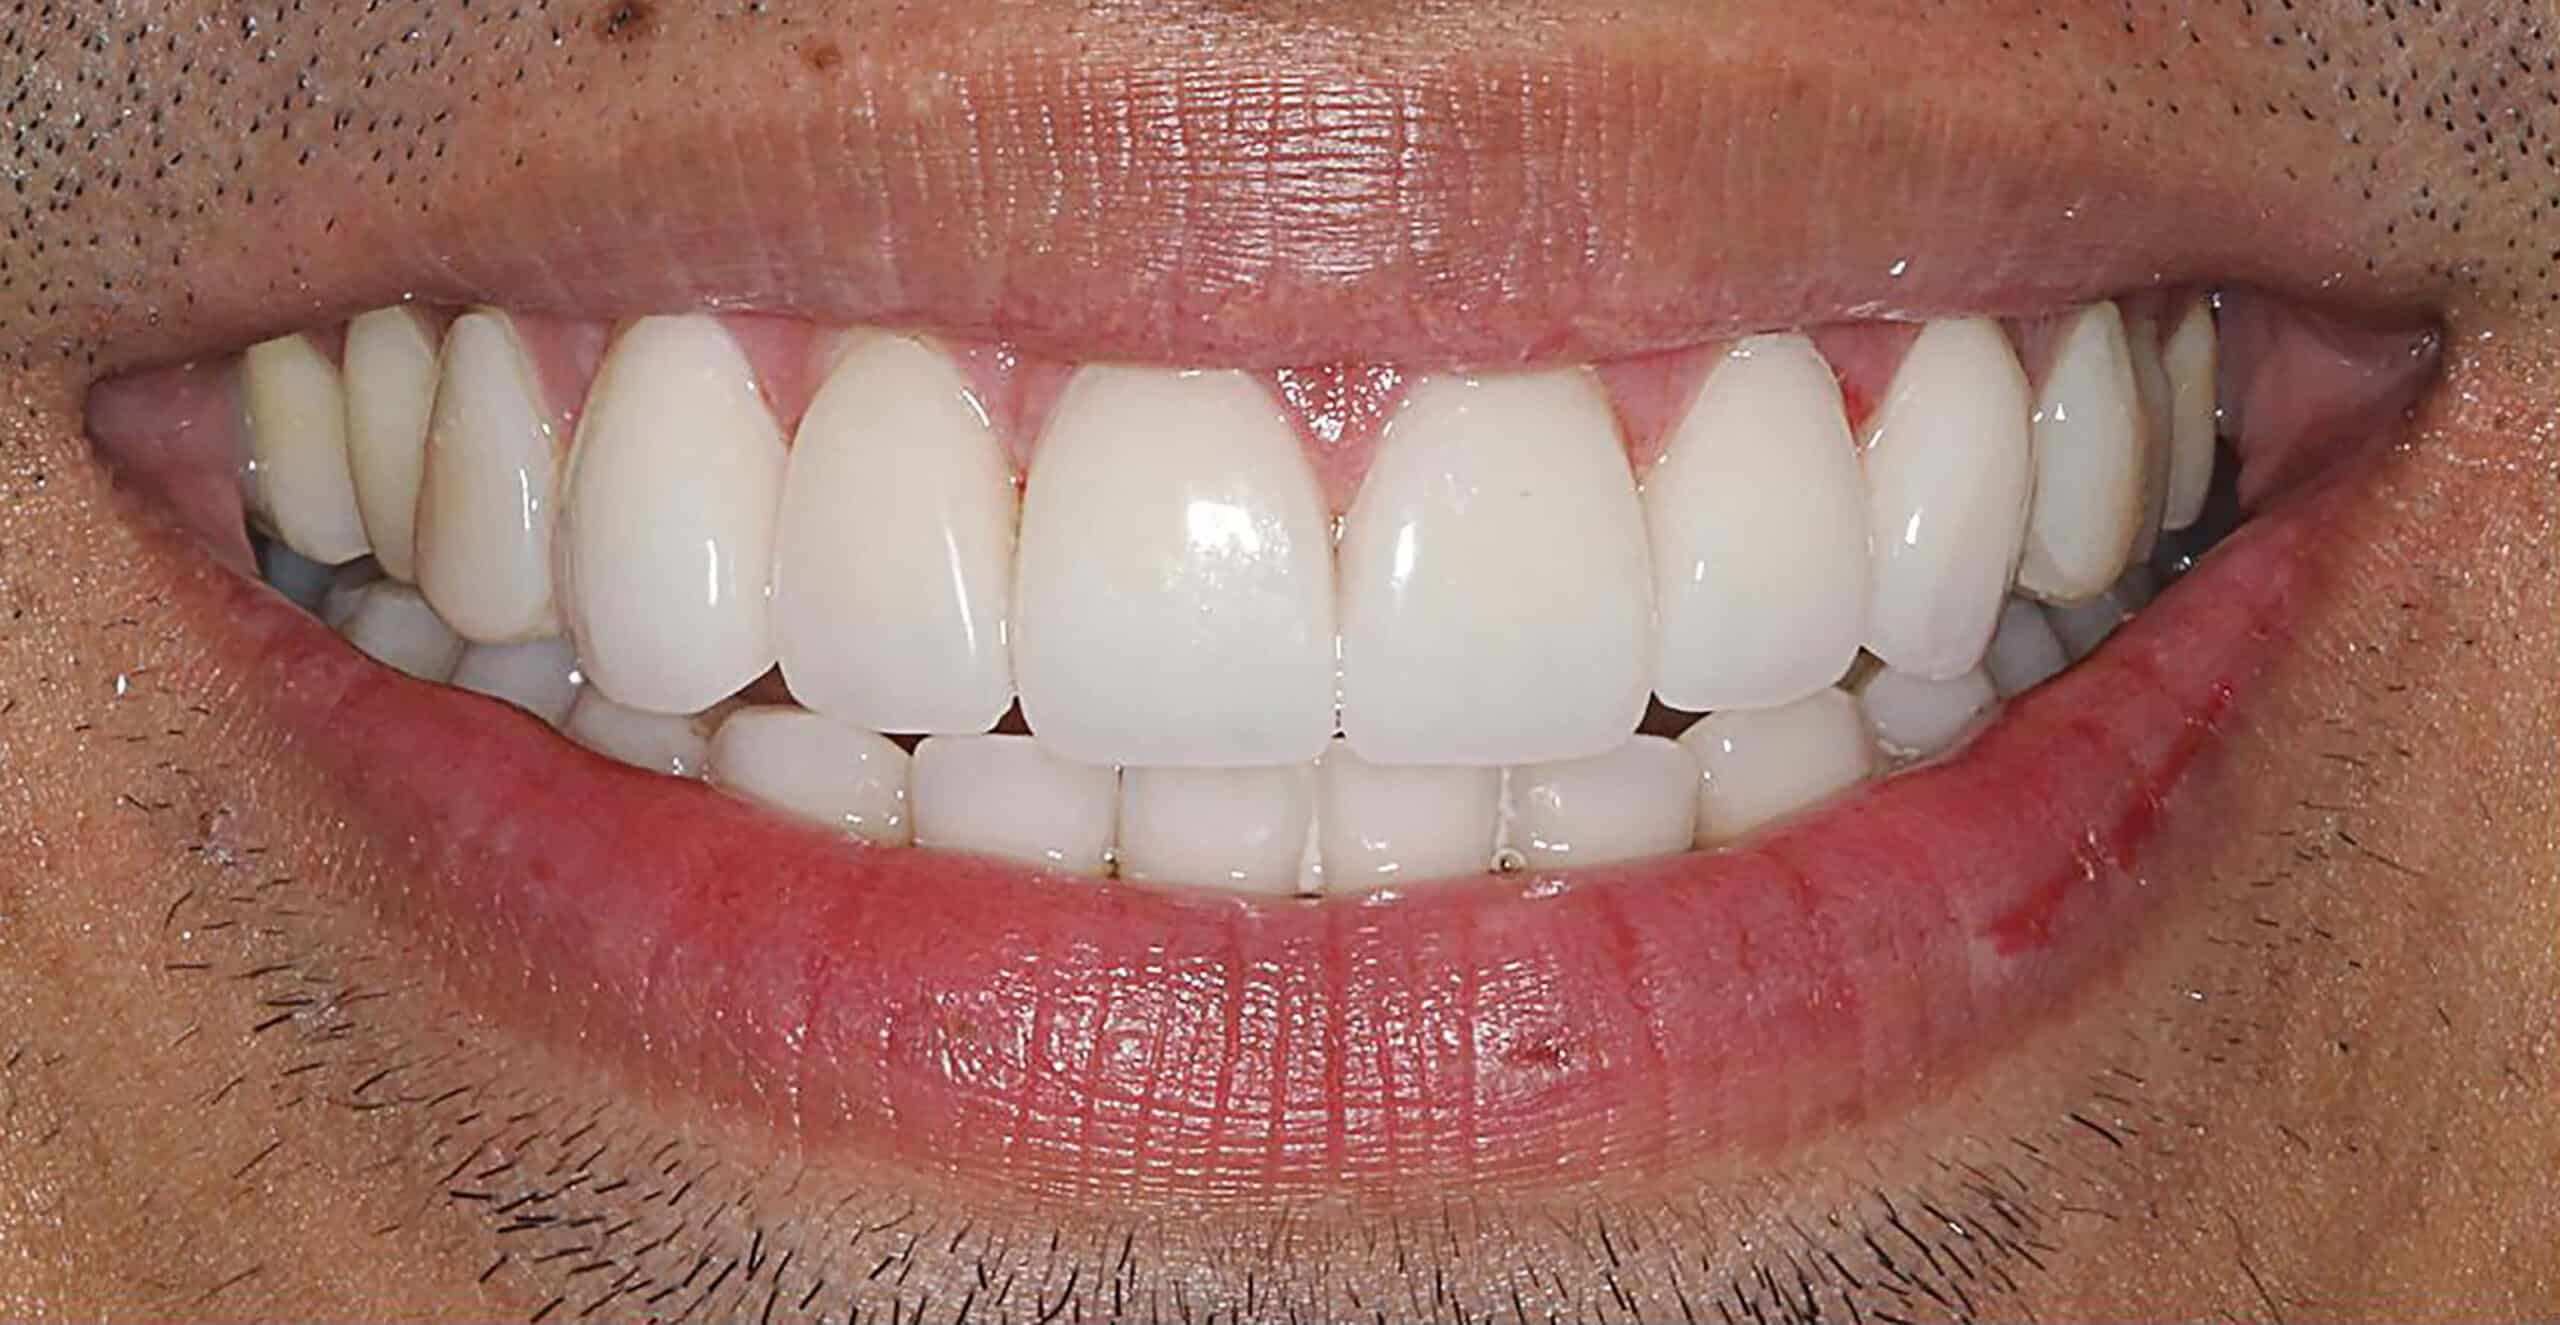 After Ceramic Veneers